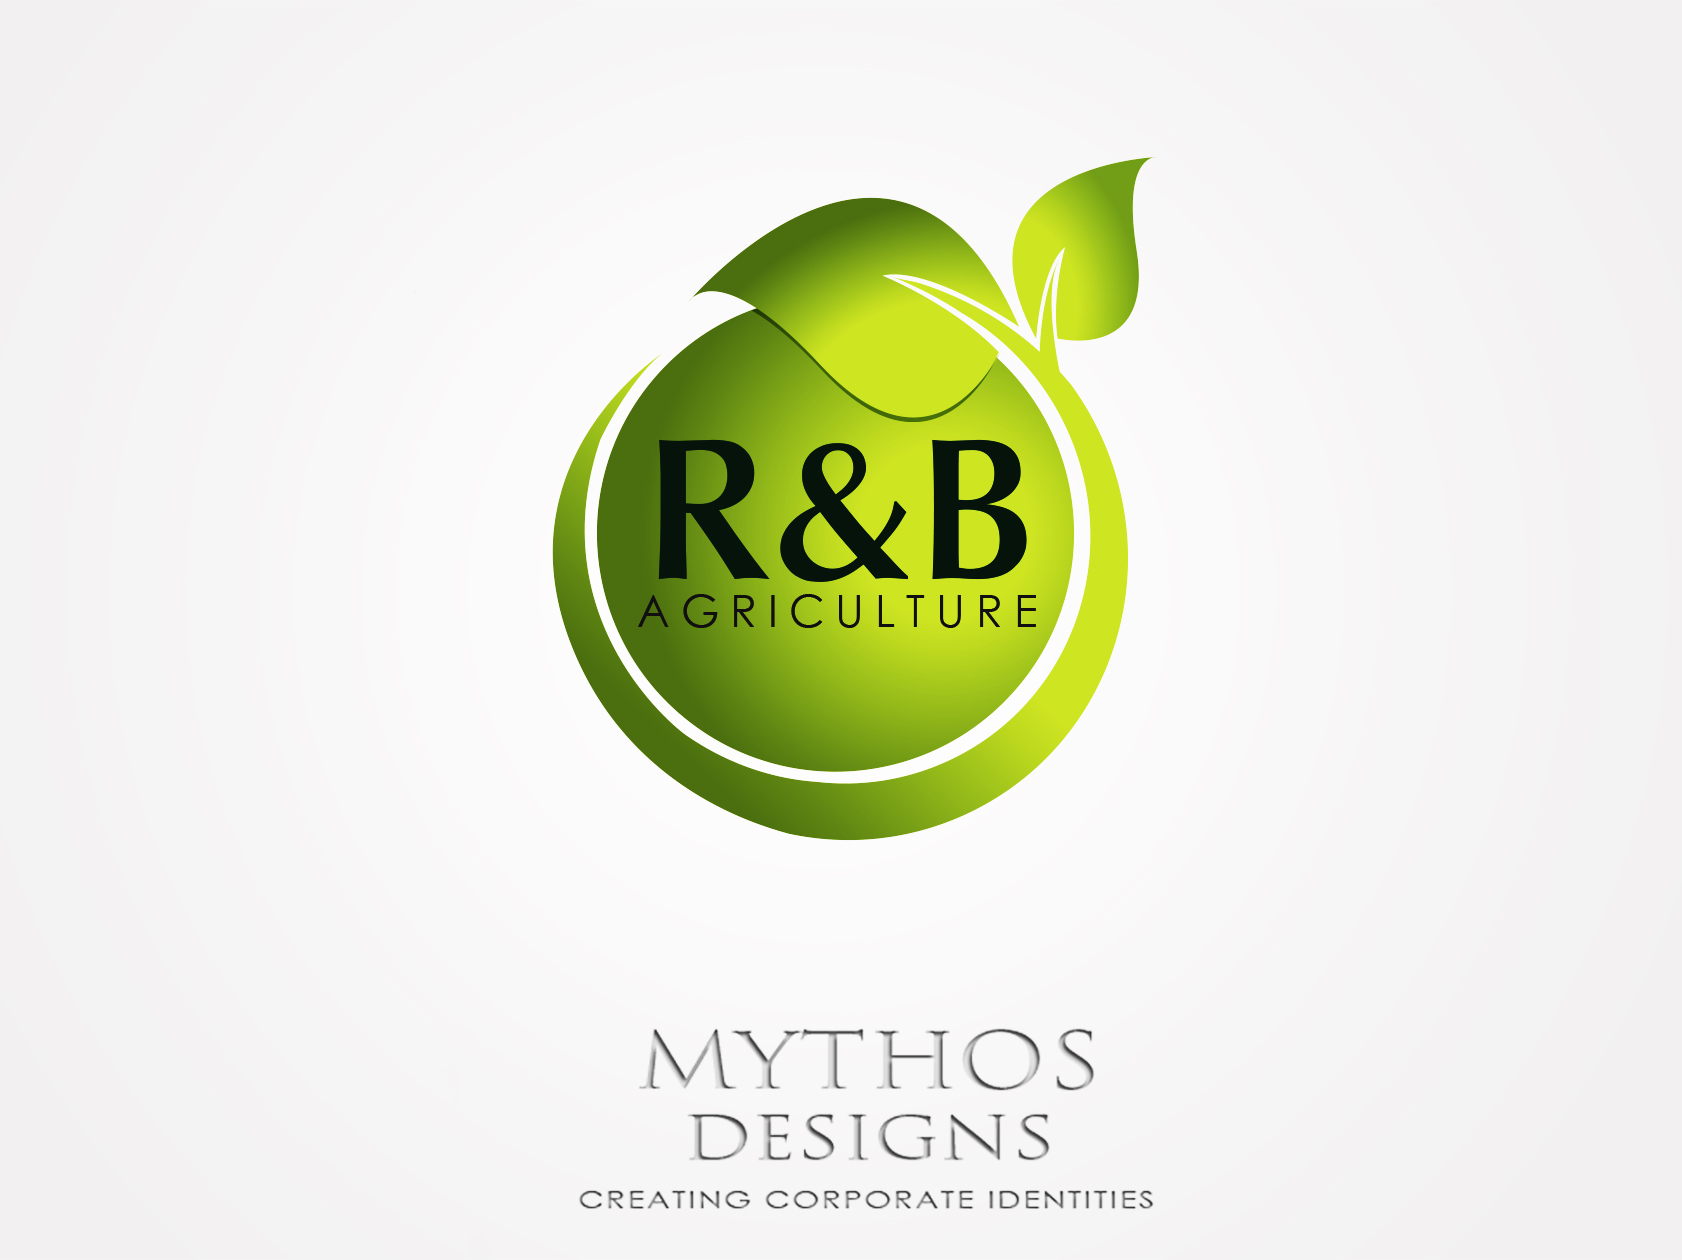 Logo Design by Mythos Designs - Entry No. 140 in the Logo Design Contest Captivating Logo Design for R & B Agriculture.